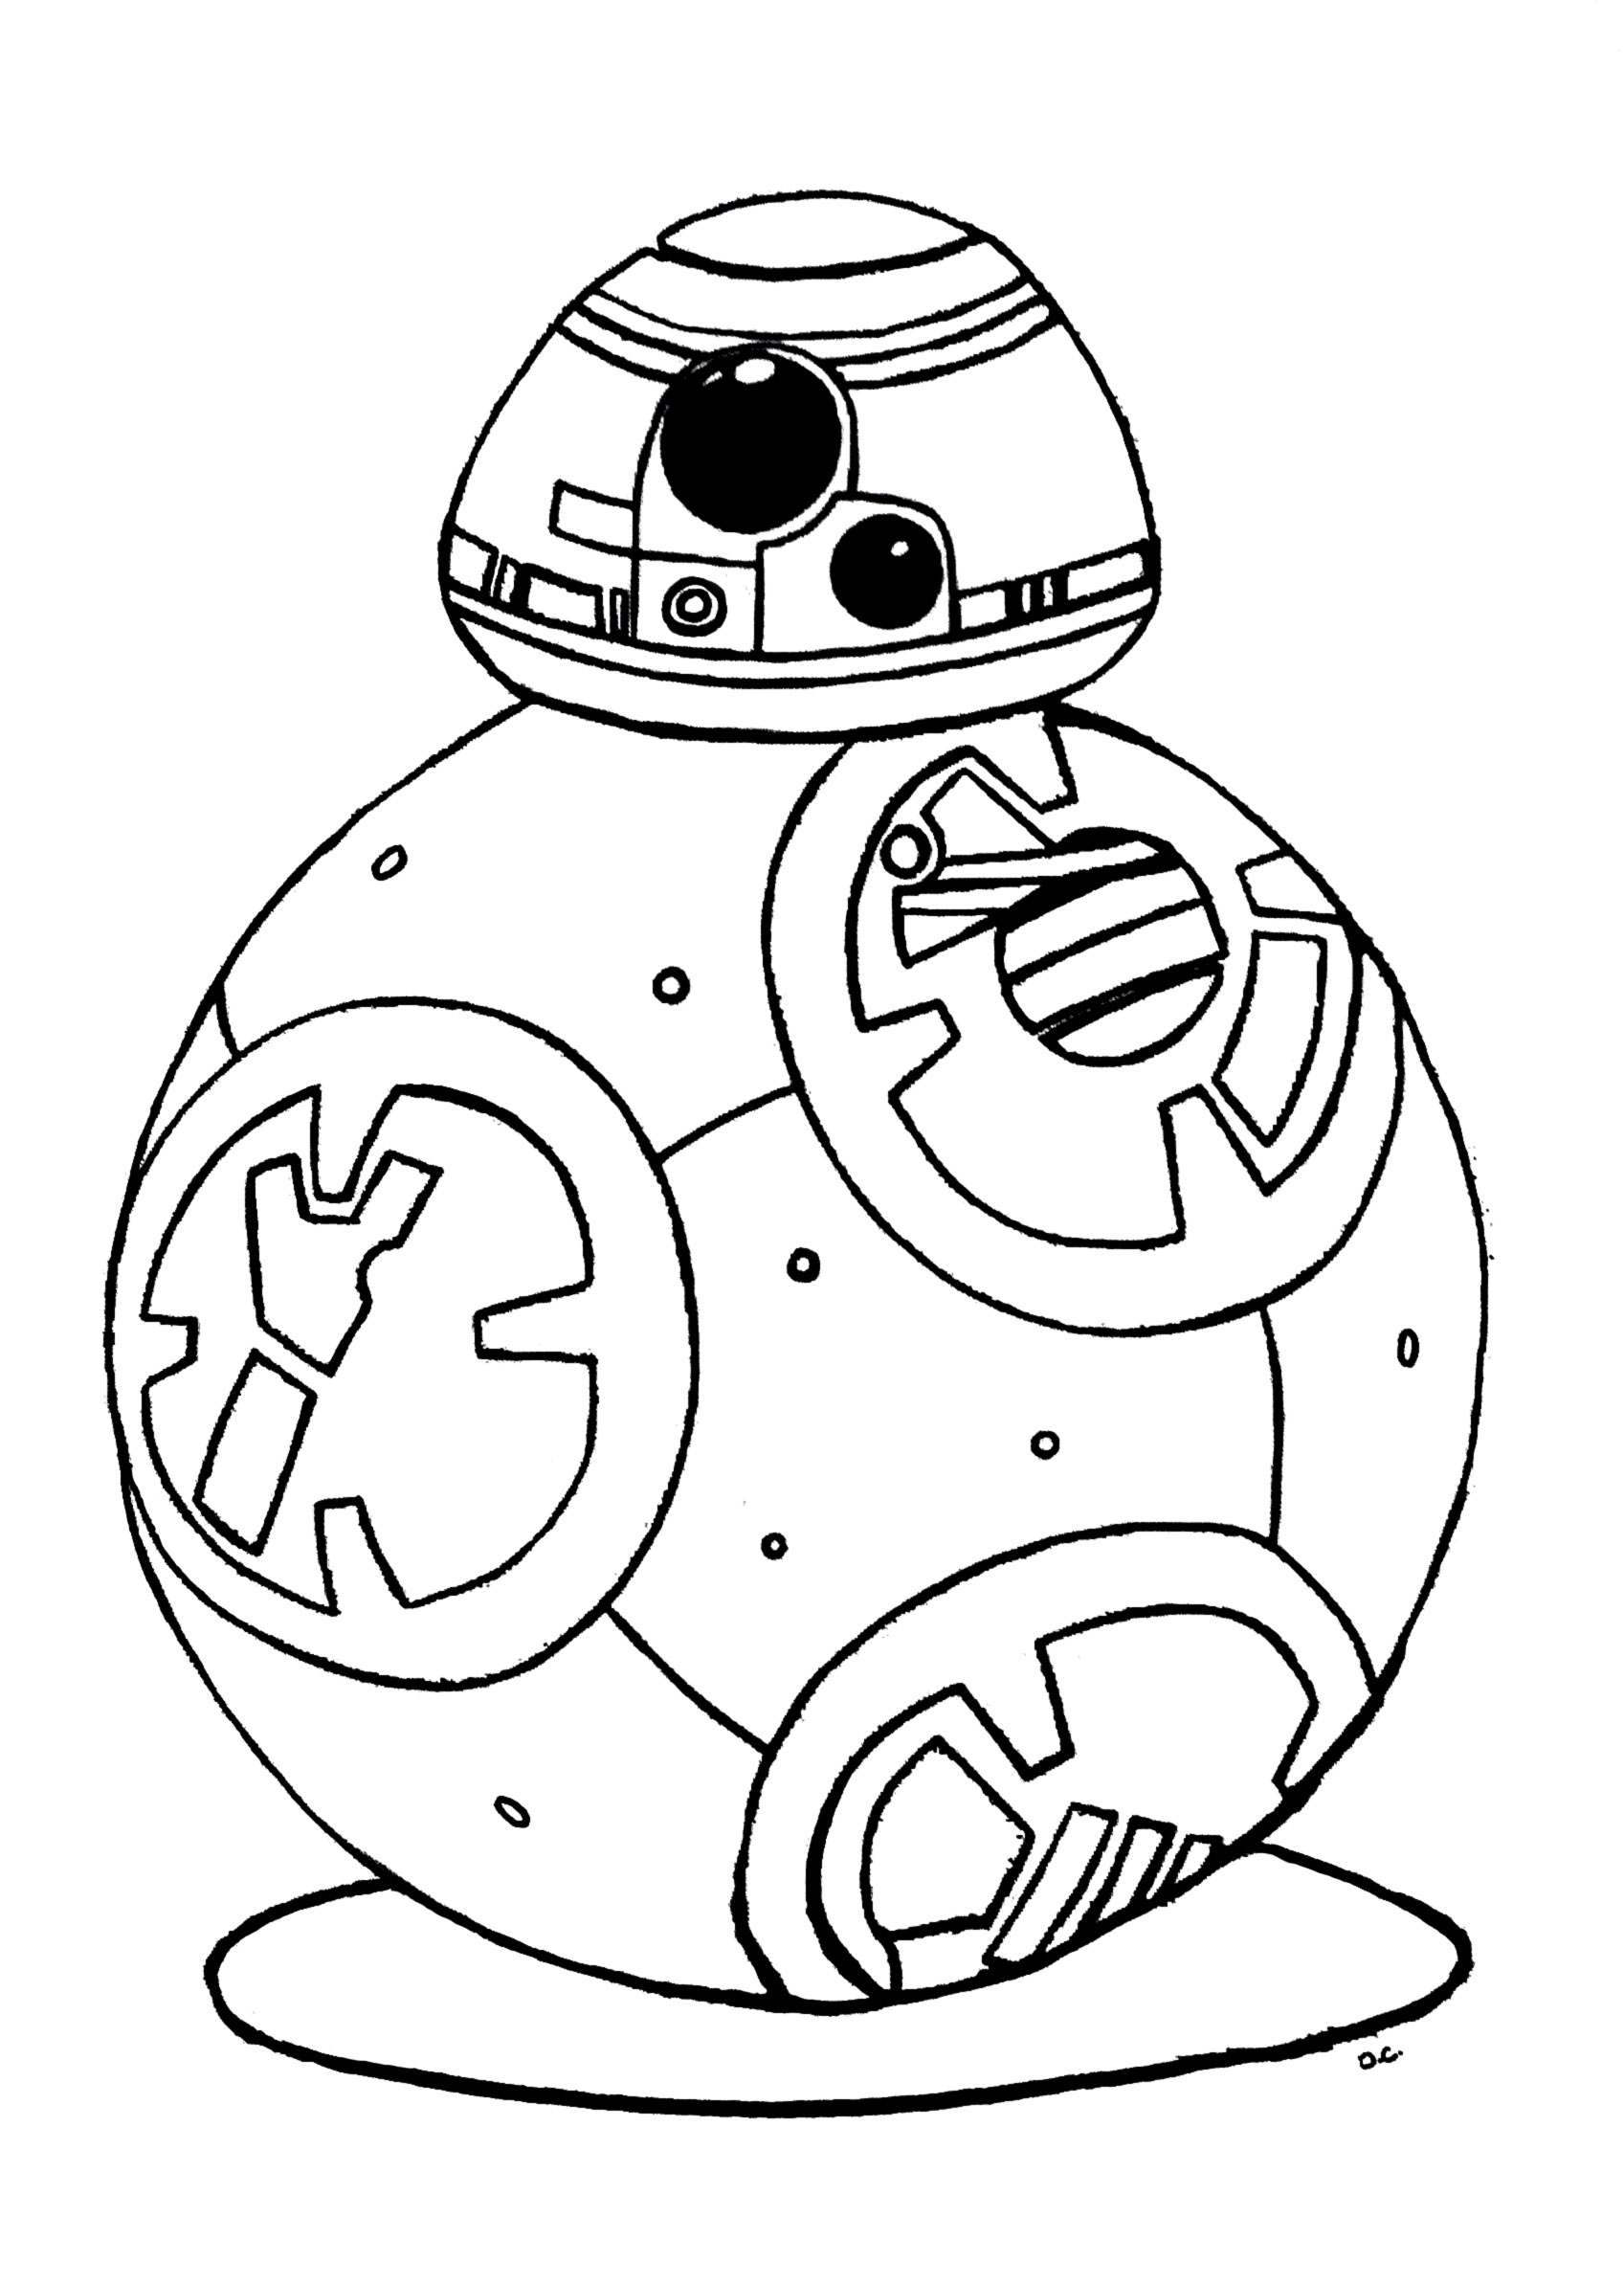 star wars coloring images star wars the force awakens bb 8 coloring pages free coloring images wars star